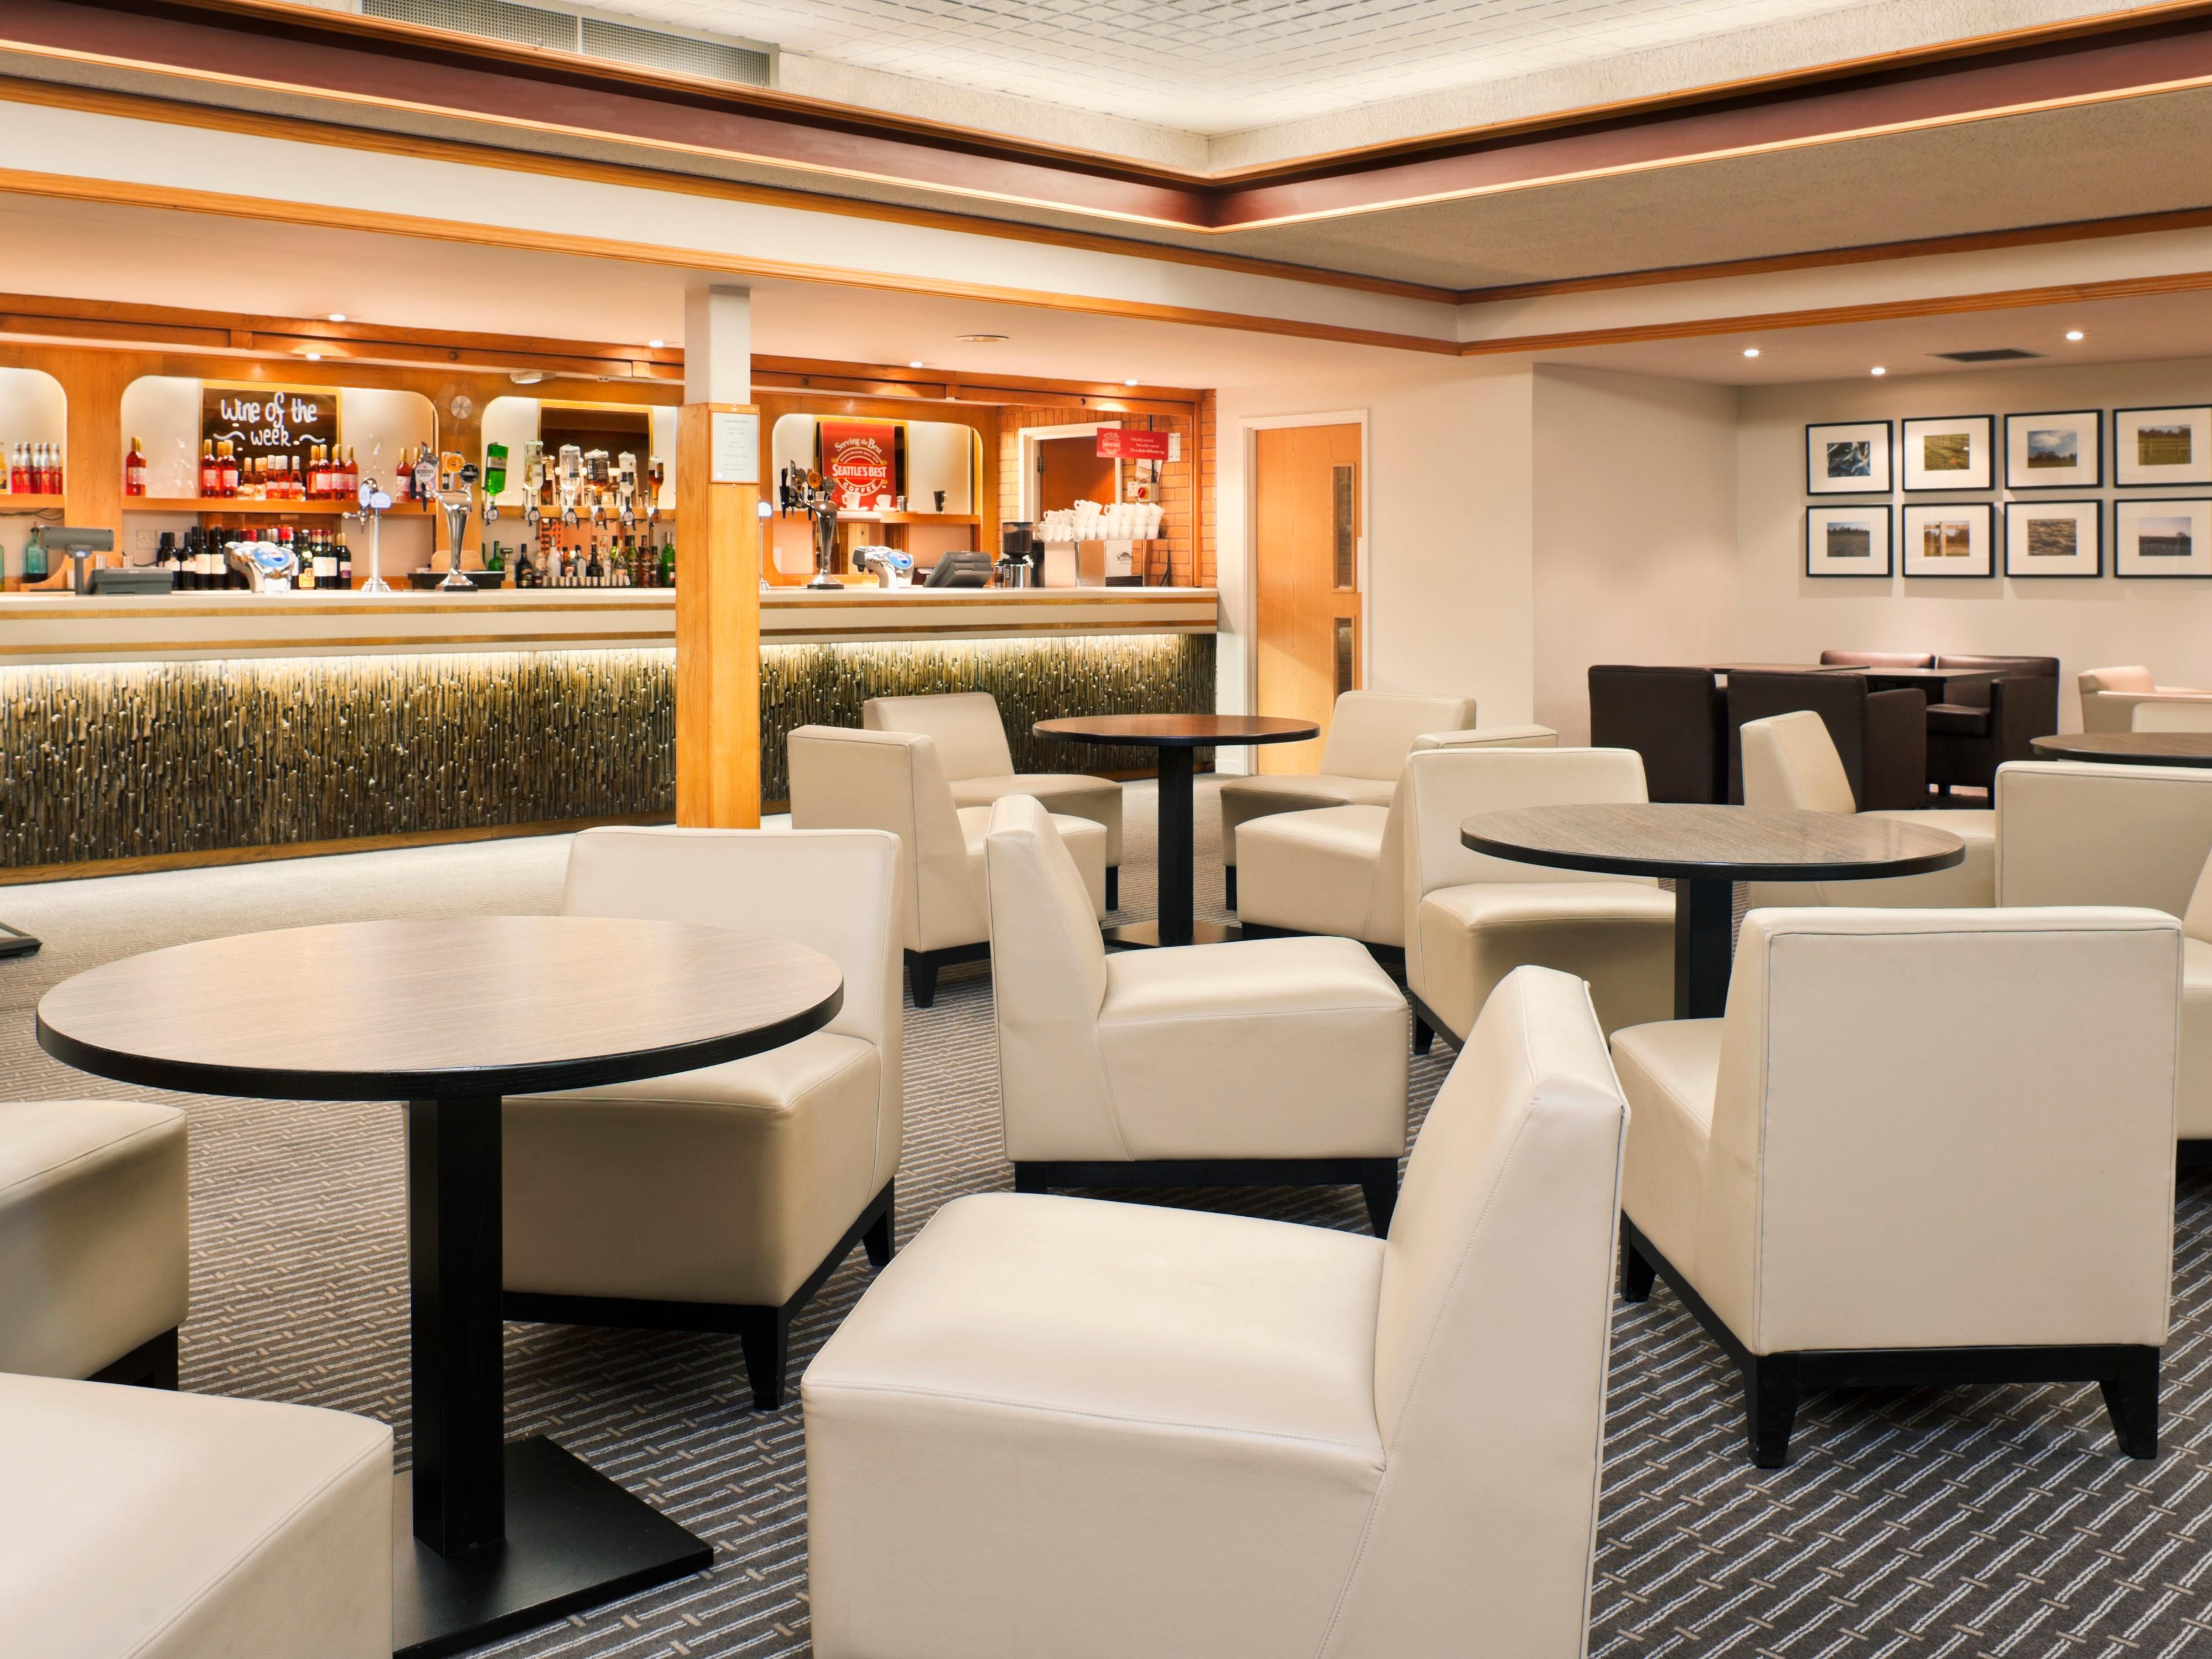 Unwind after a long day in the comfortable lounge area